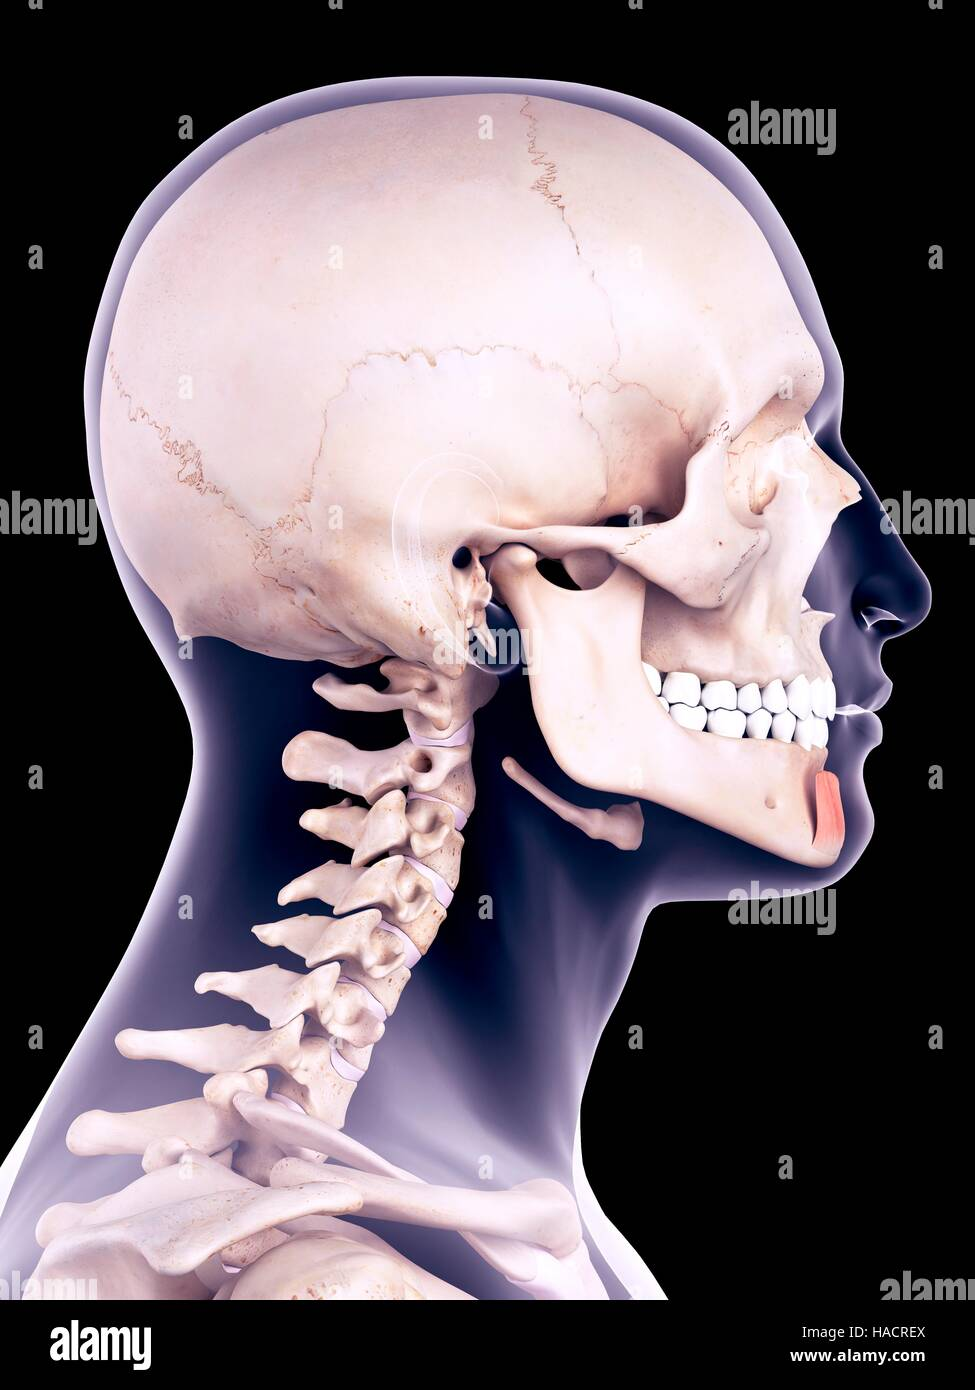 illustration of the mentalis muscle stock photo 126901010 alamy